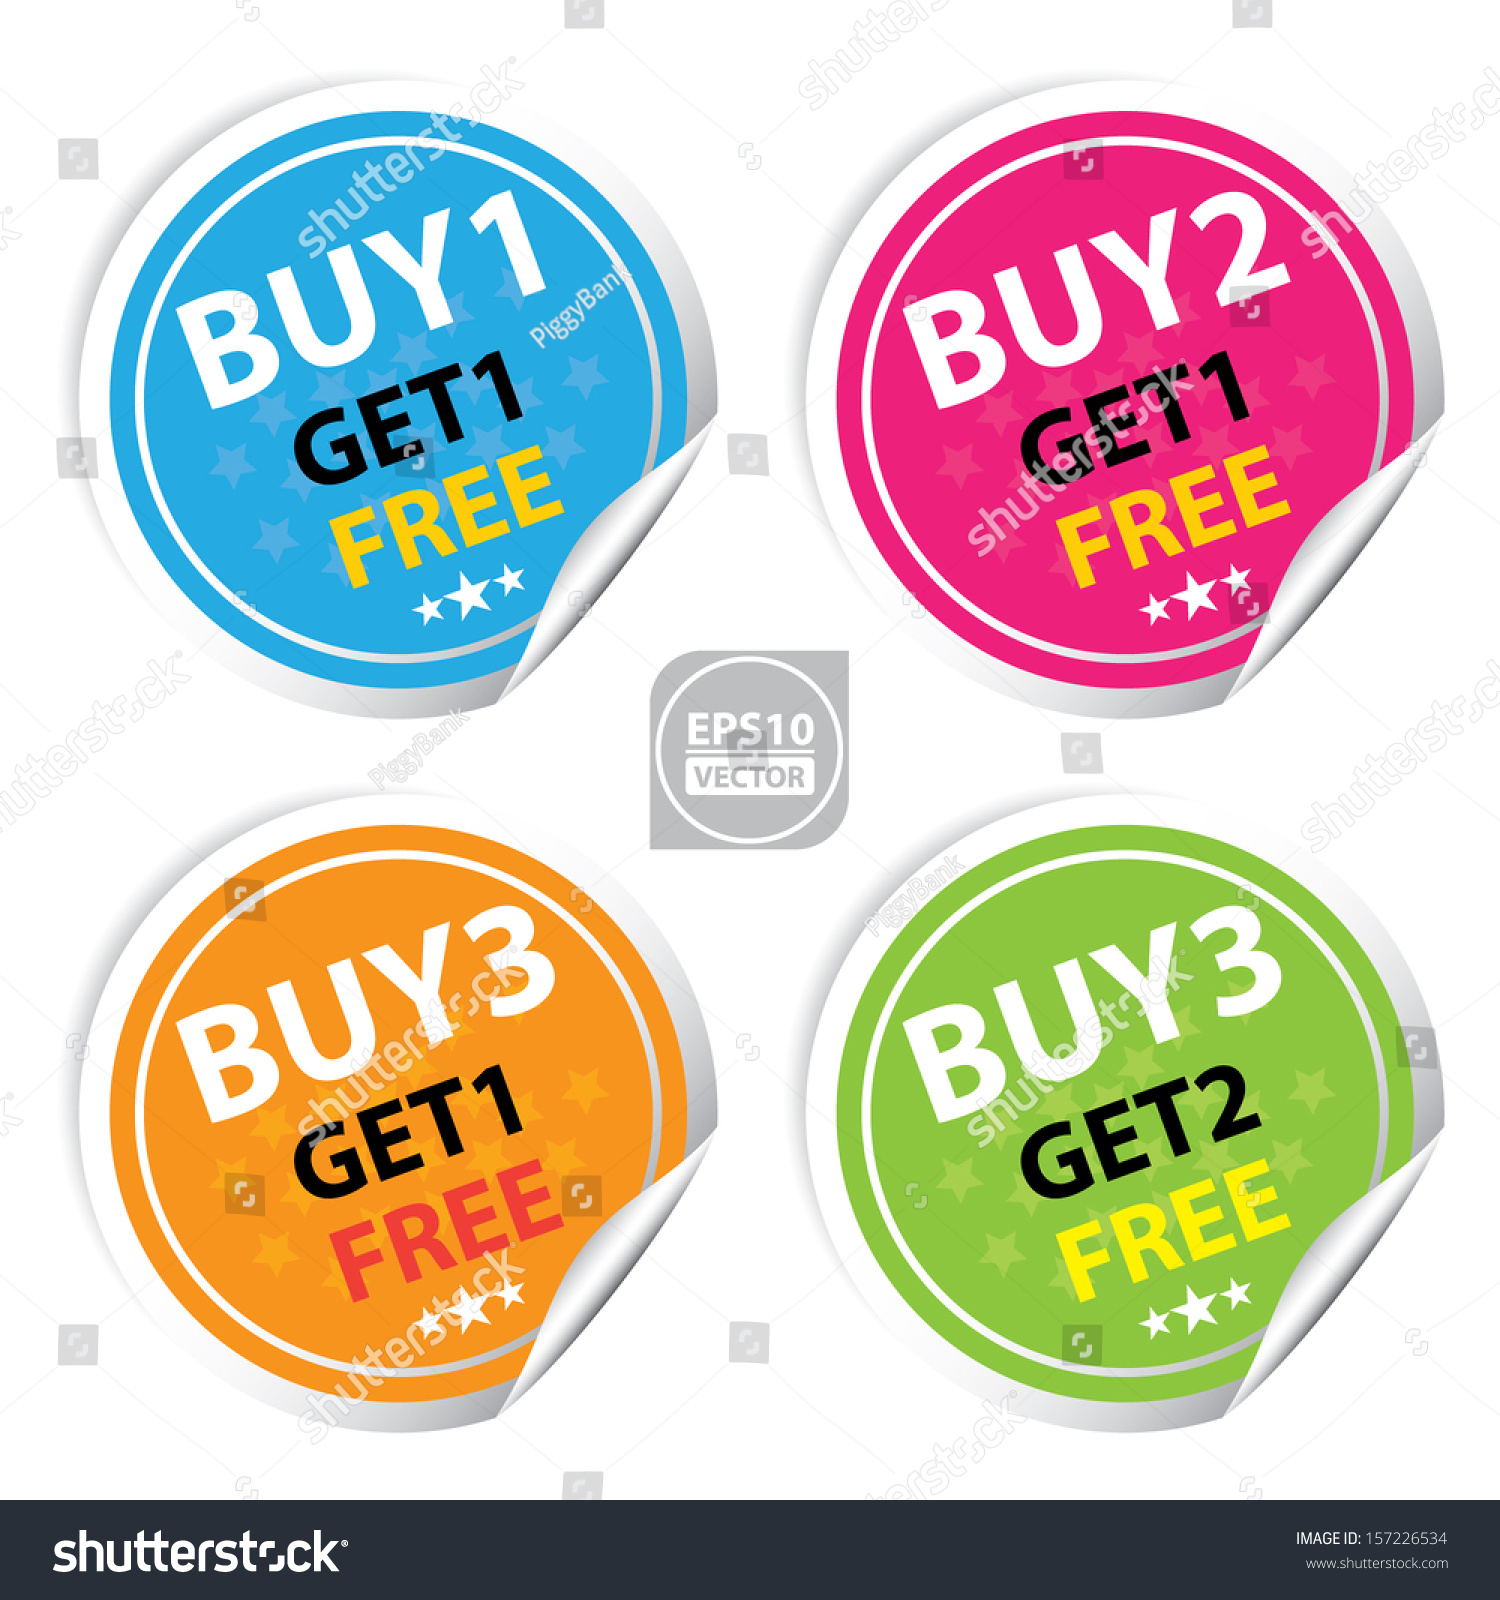 How To Buy Stocks For Free Vector Sticker Or Label For Marketing Campaign  Buy 1